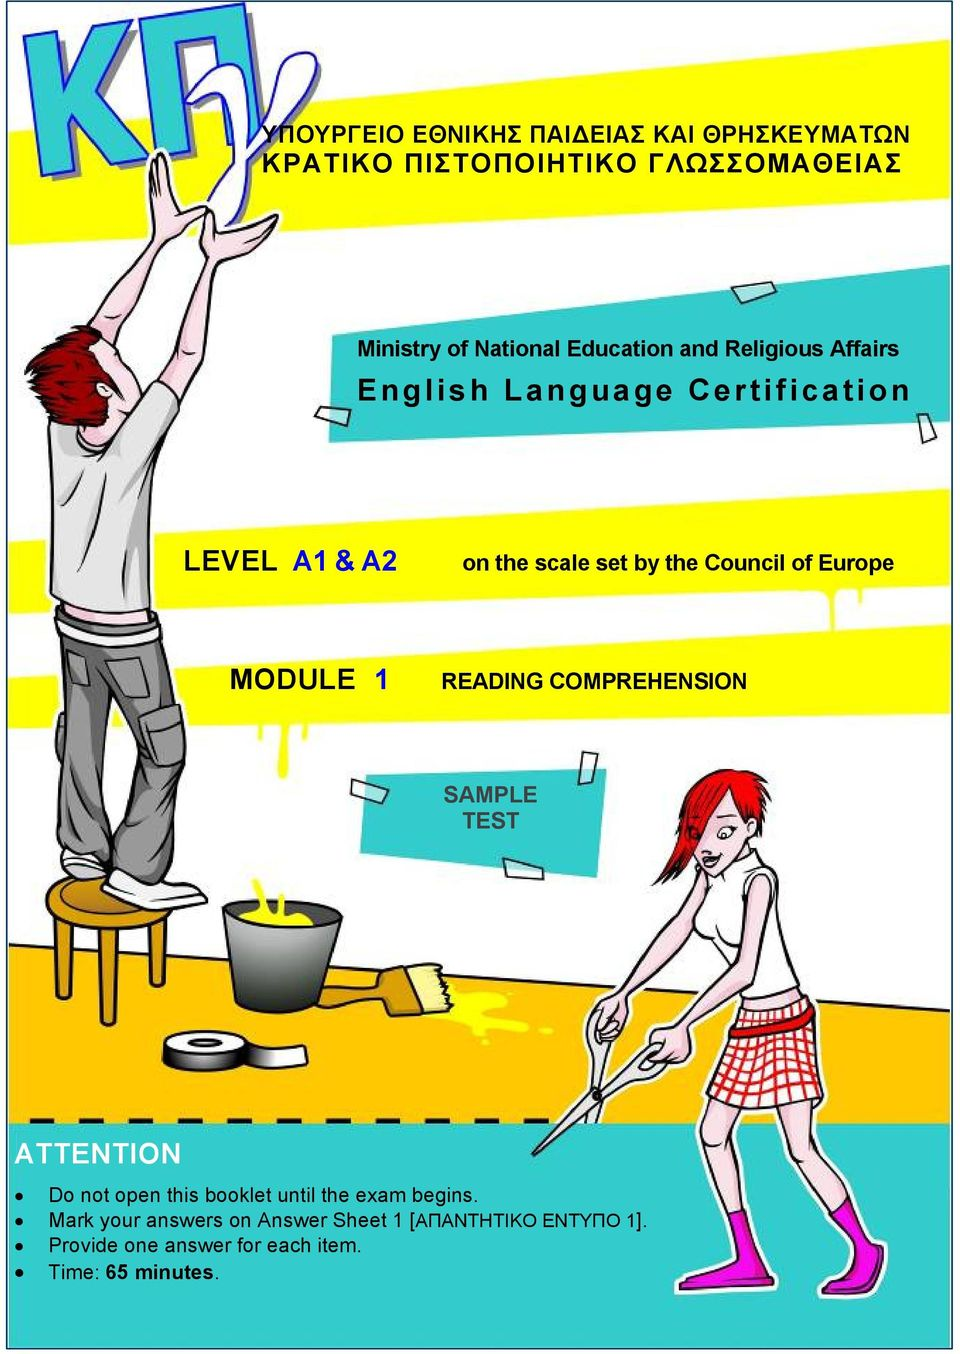 Council of Europe MODULE 1 READING COMPREHENSION TEST ATTENTION Do not open this booklet until the exam